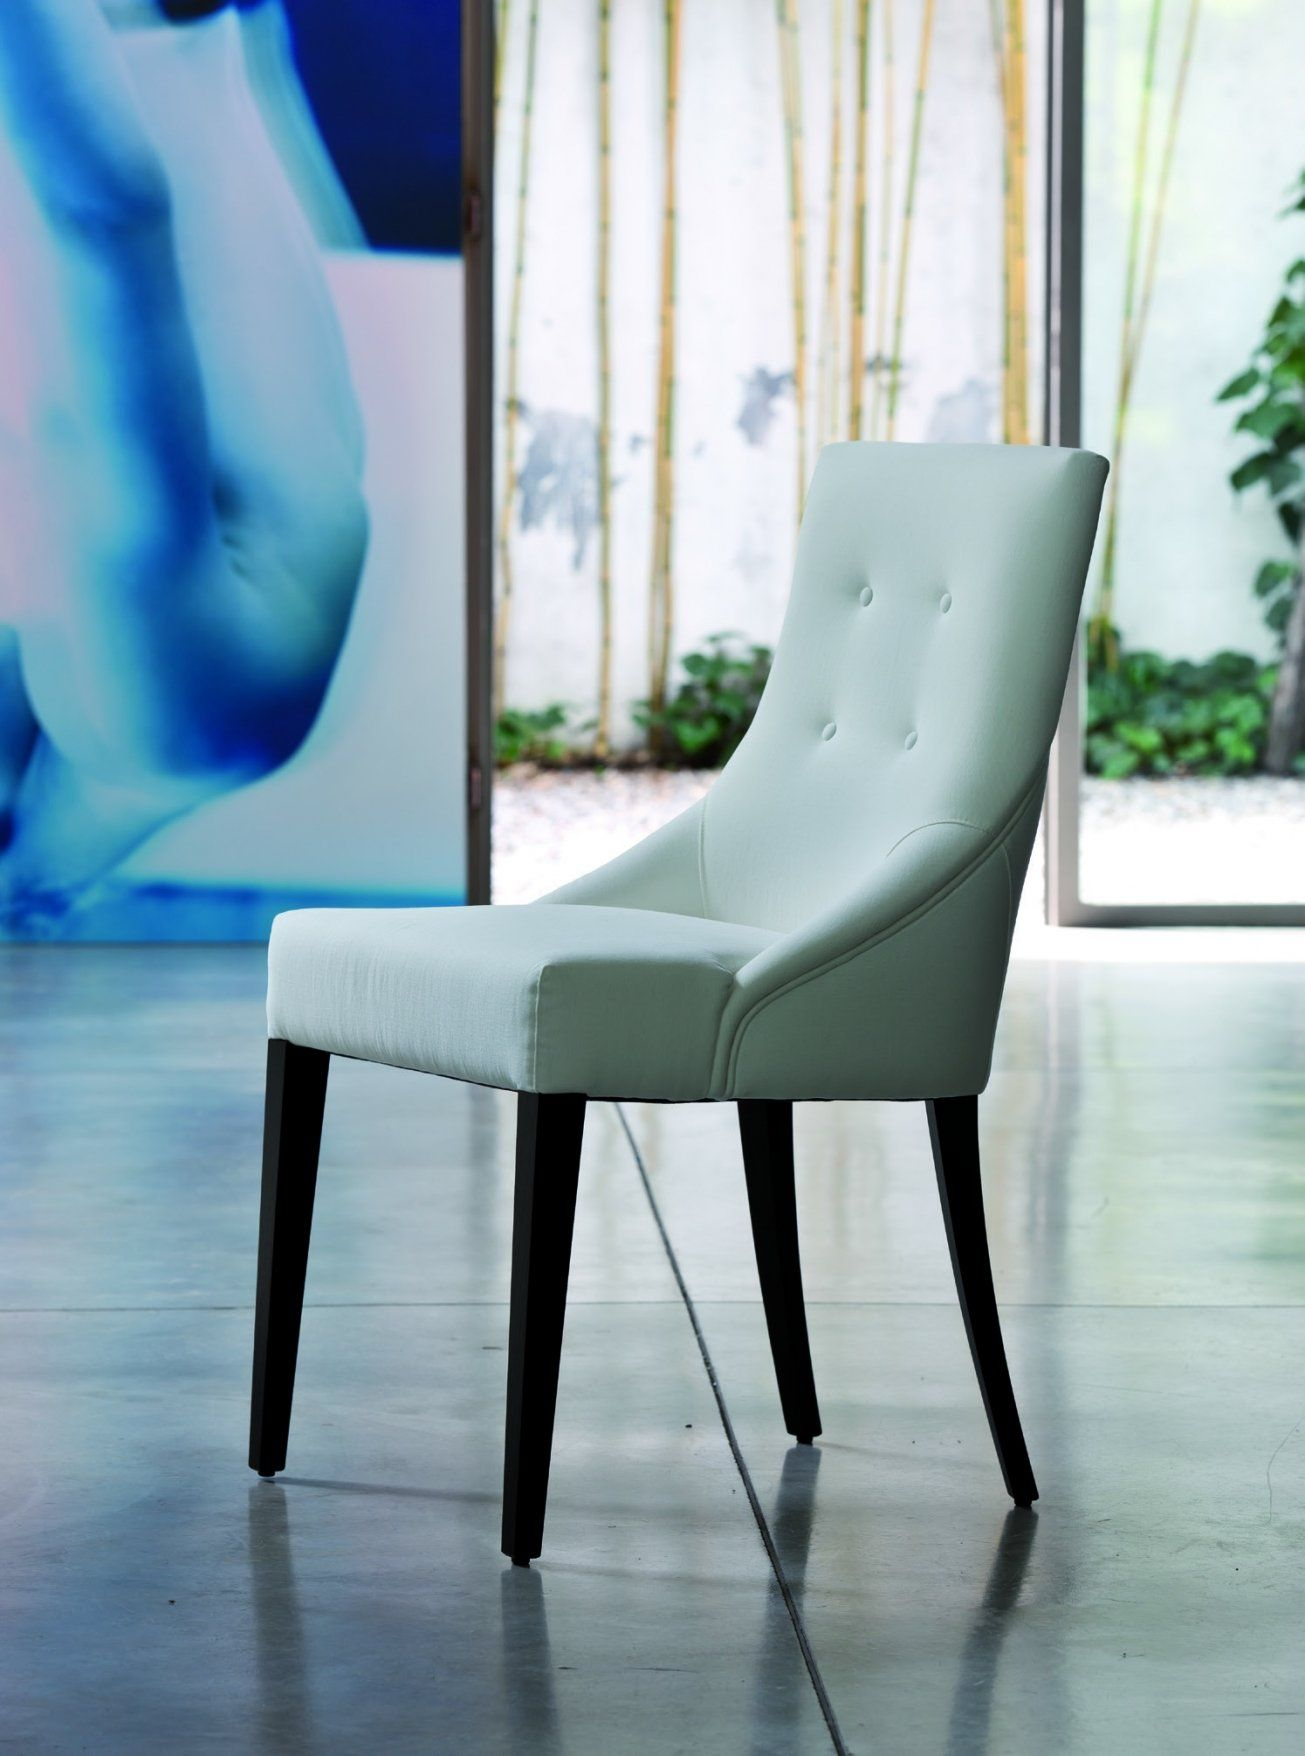 Enjoyable Chloe Dining Chair Gautam Jain Dining Chairs Caraccident5 Cool Chair Designs And Ideas Caraccident5Info